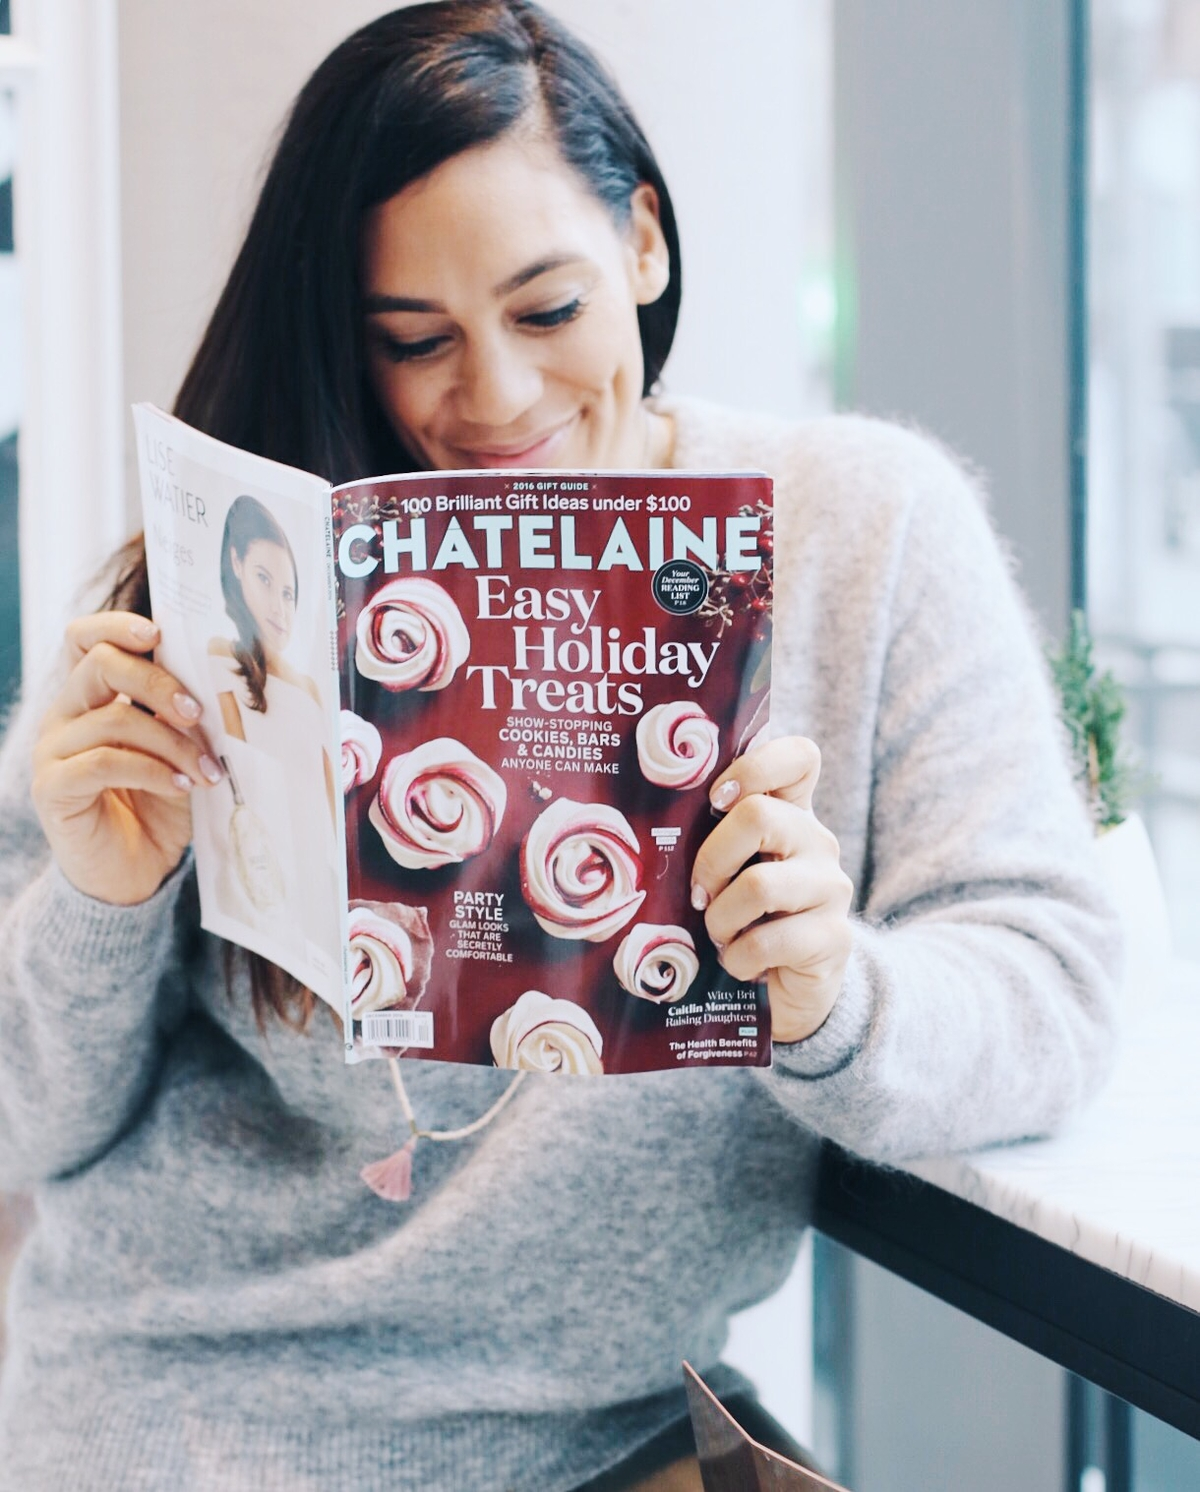 chatelaine gift guide